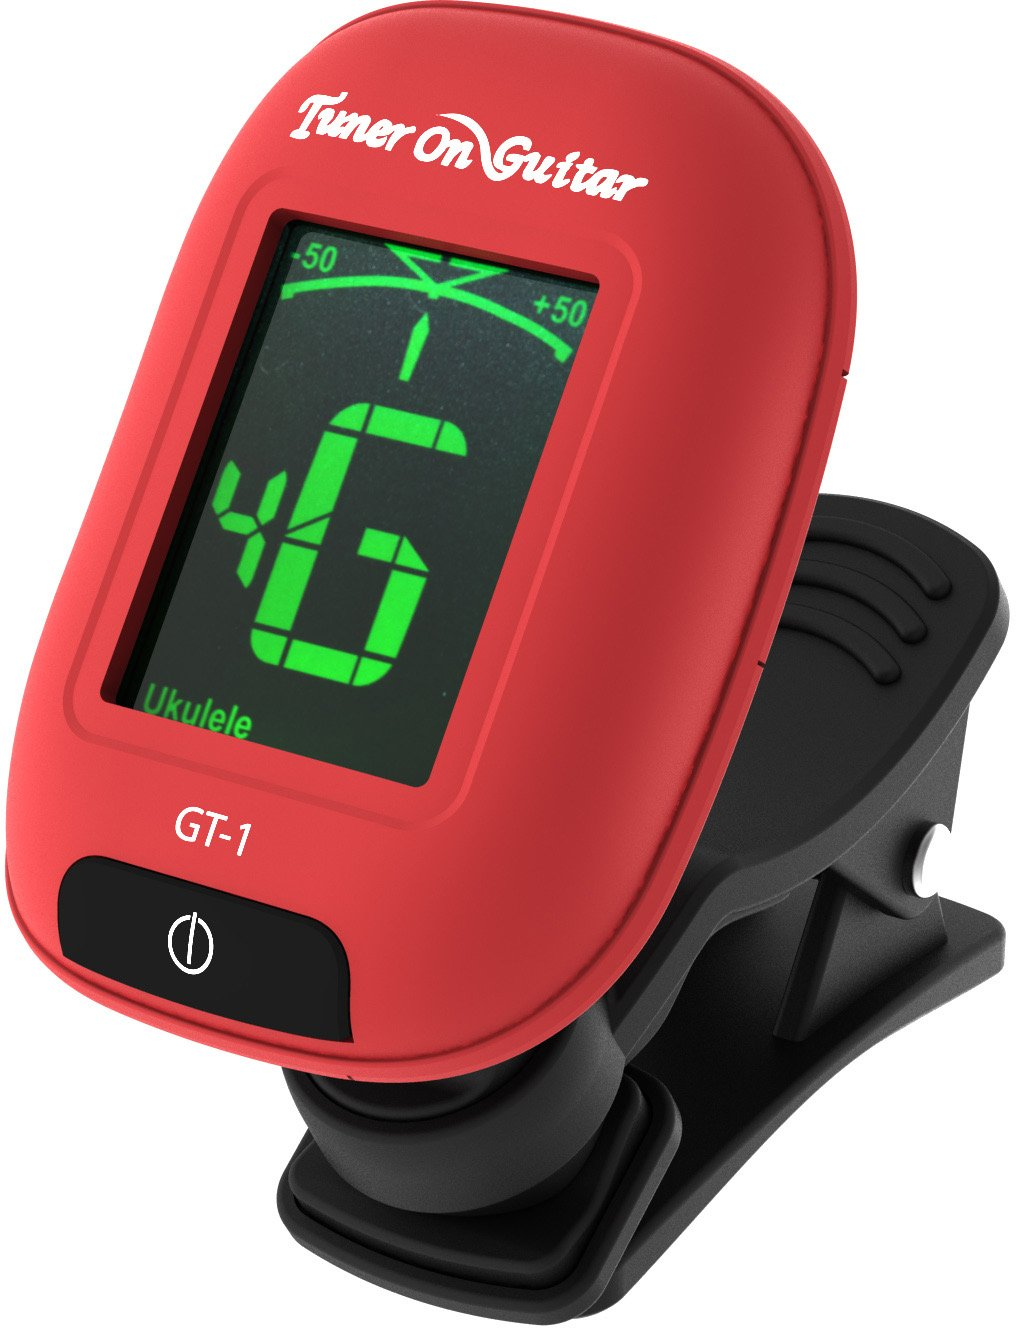 Guitar Tuner Clip On, Tune Acoustic & Electric Guitars, Bass, Ukulele and Violin, Easy to Use, Accurate, Fast, Turn 360 Degrees, Chromatic, Electronic, Enhance Your Tuning Experience Now! Tuner On Guitar GT-1